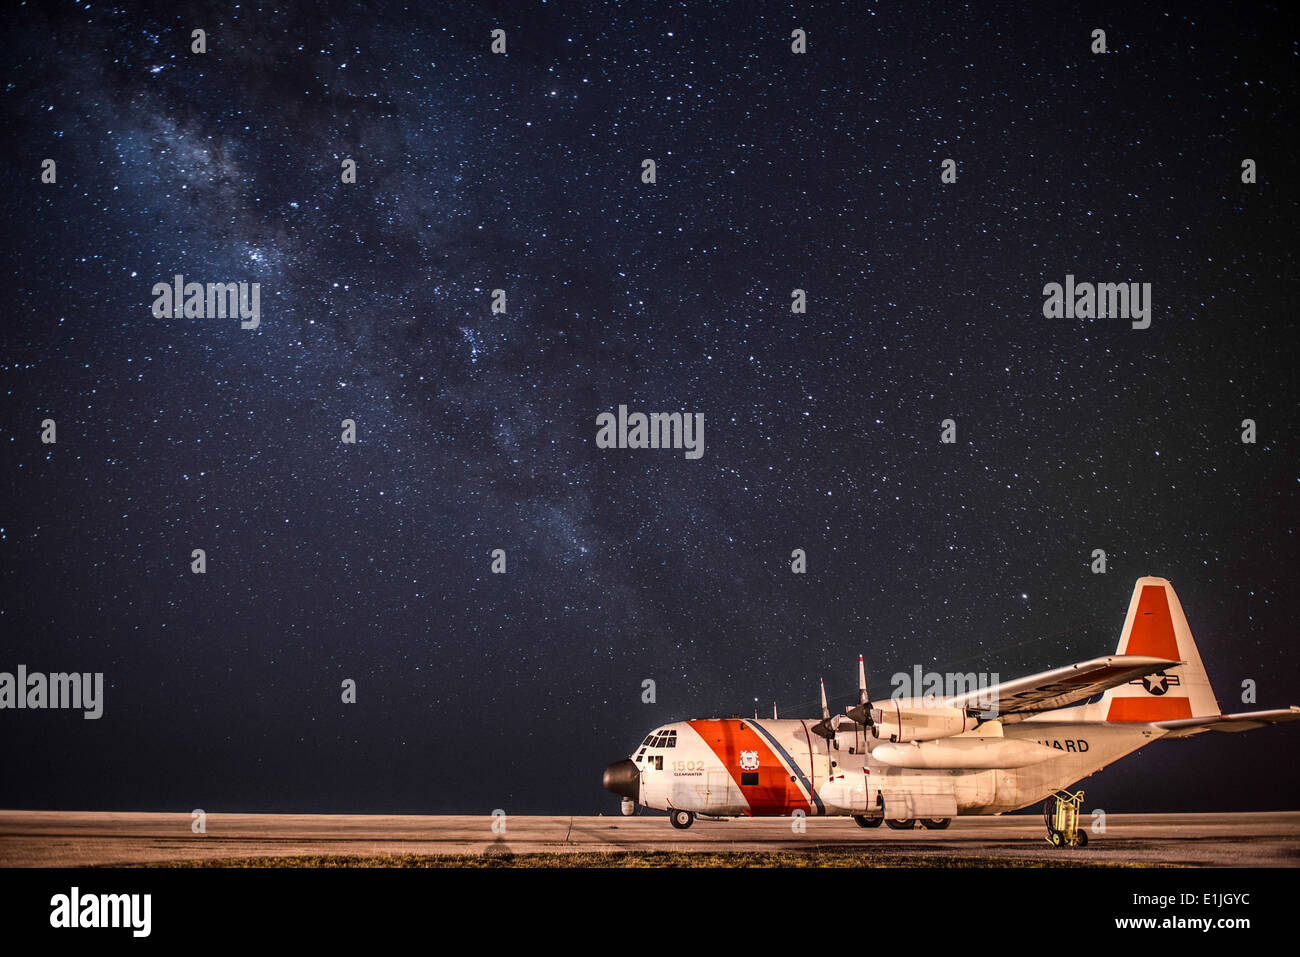 A U.S. Coast Guard C-130 Hercules aircraft assigned to Coast Guard Air Station Clearwater, Fla., sits parked on Stock Photo